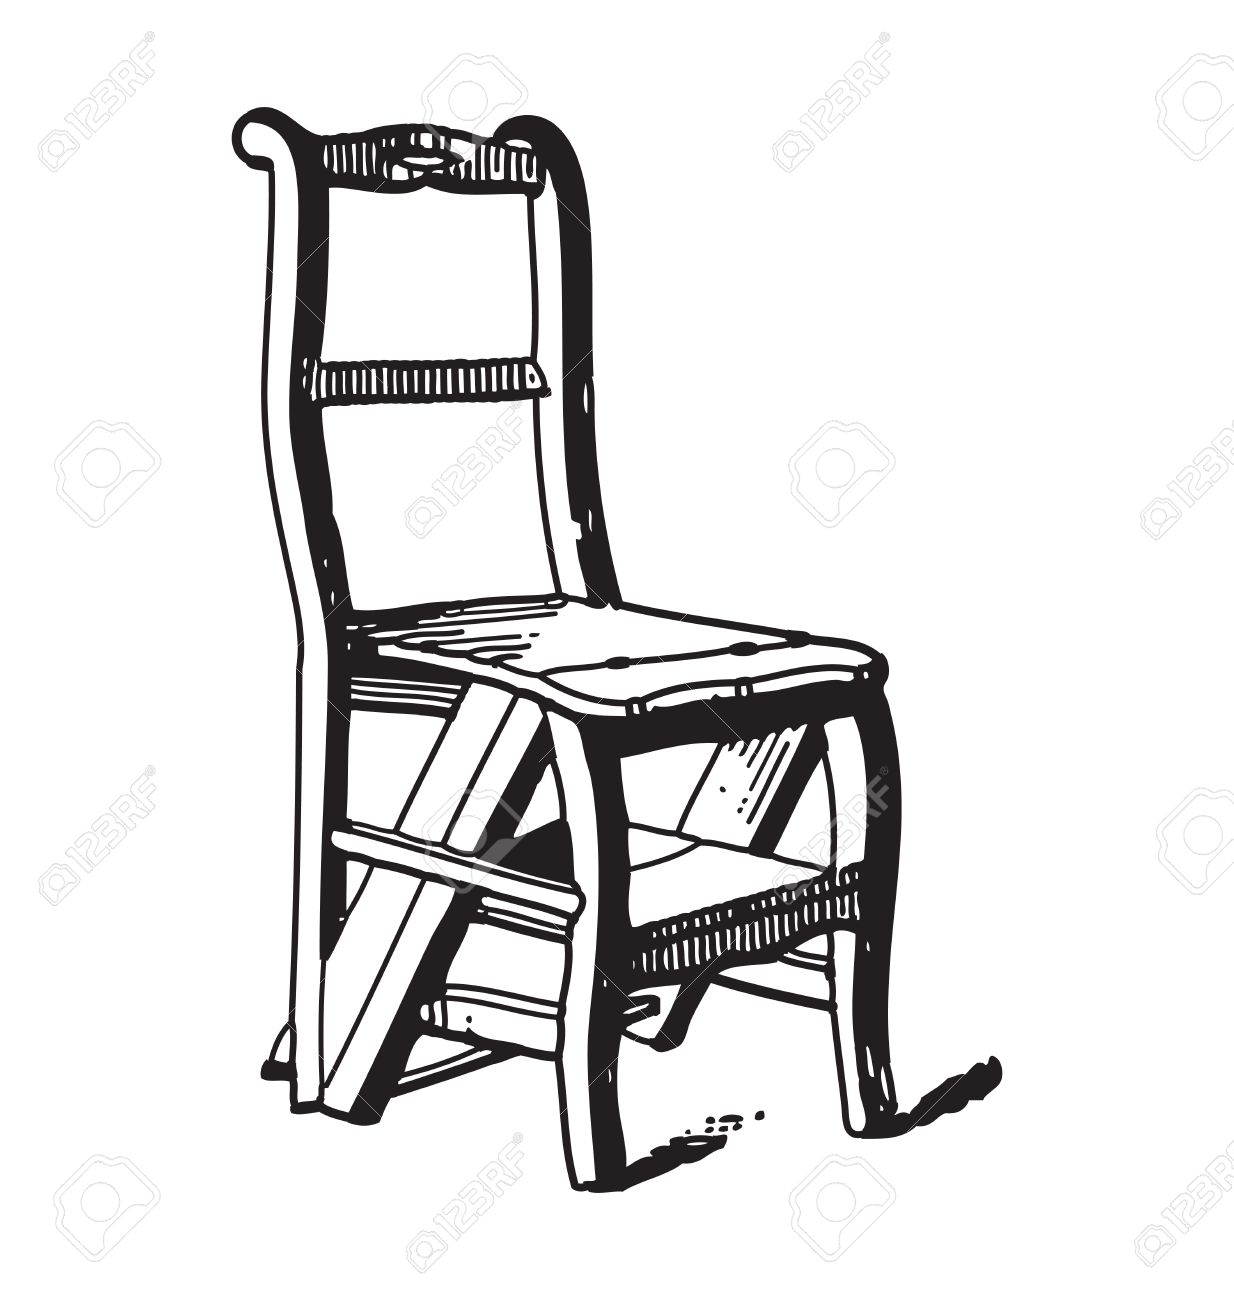 Antique Style Engraving Of Vintage Wooden Chair Stock Vector   36478076